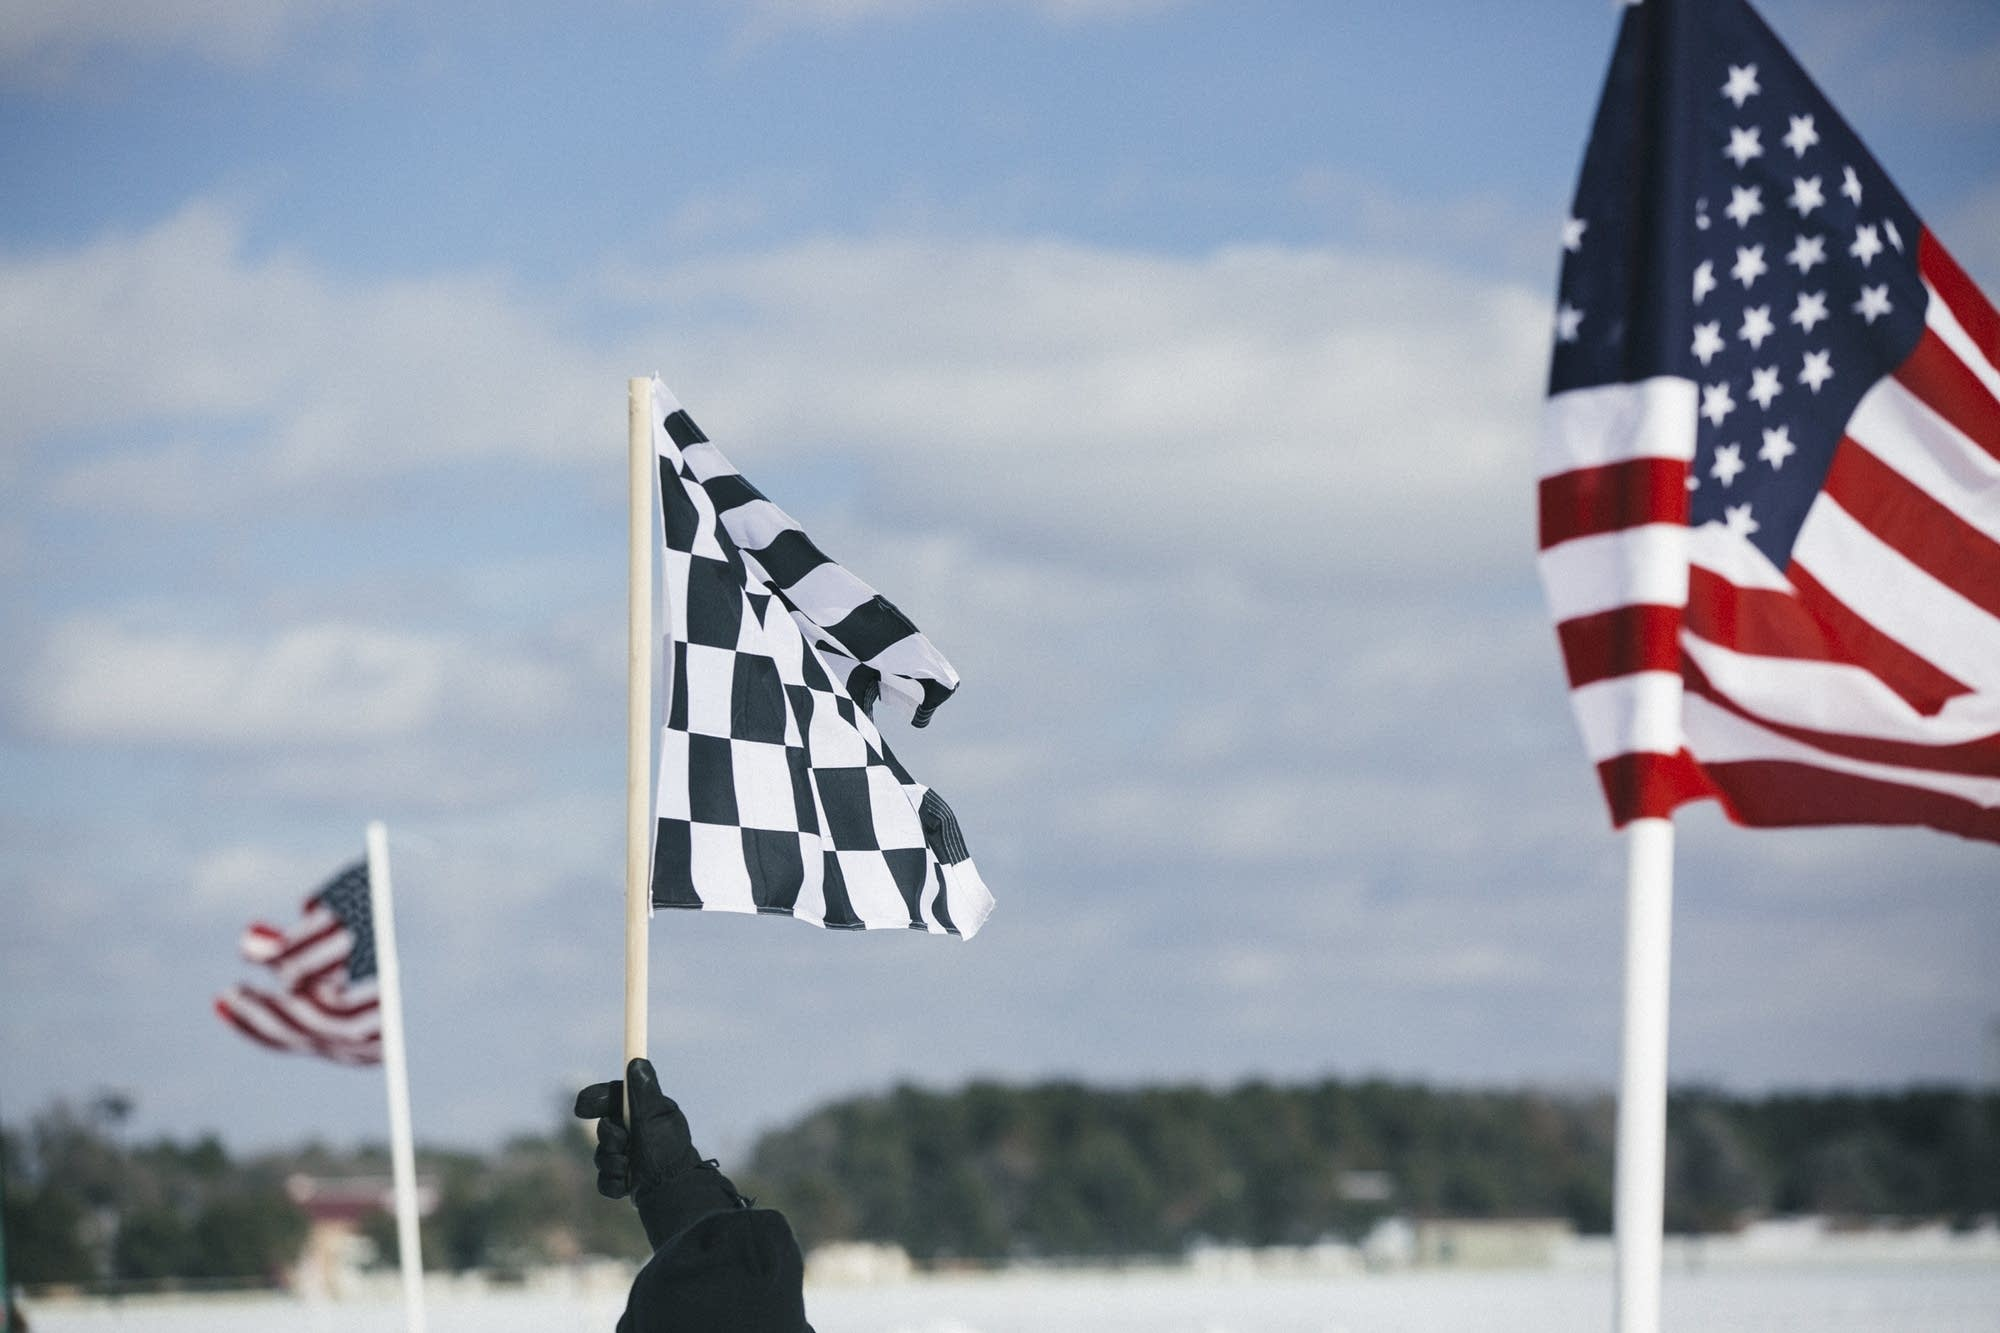 A checkered flag flies at the end of the skijoring track.